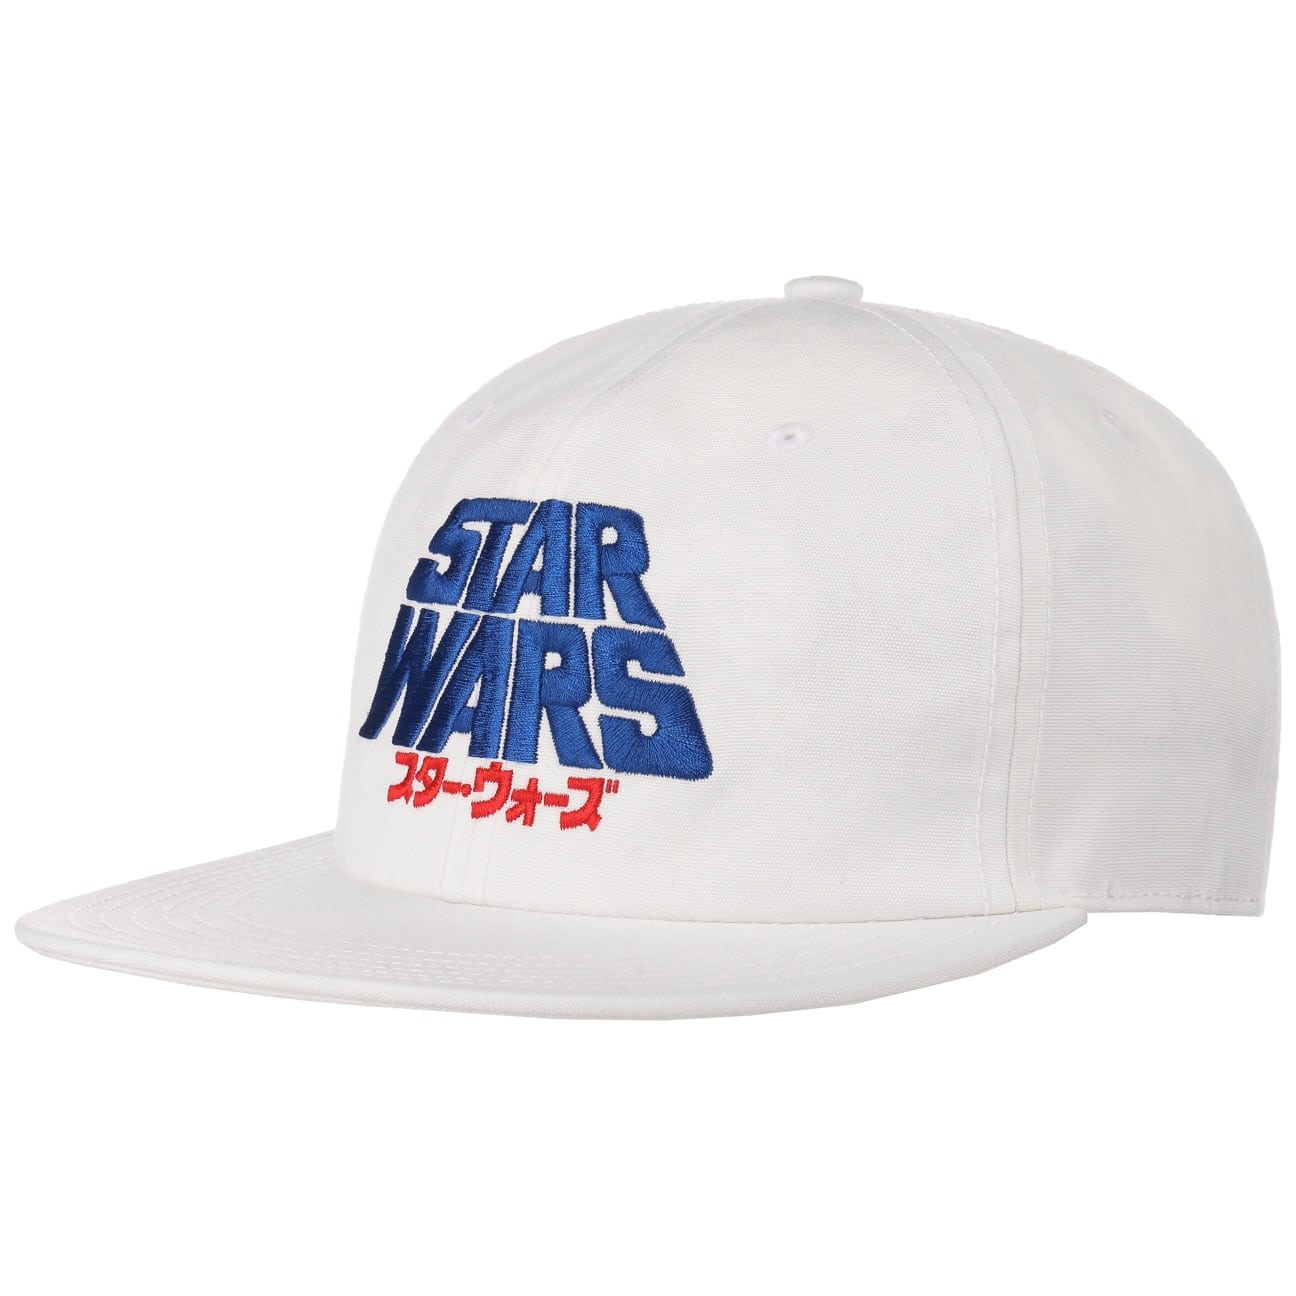 Gorra Star Wars Unstruct by dedicated  base cap